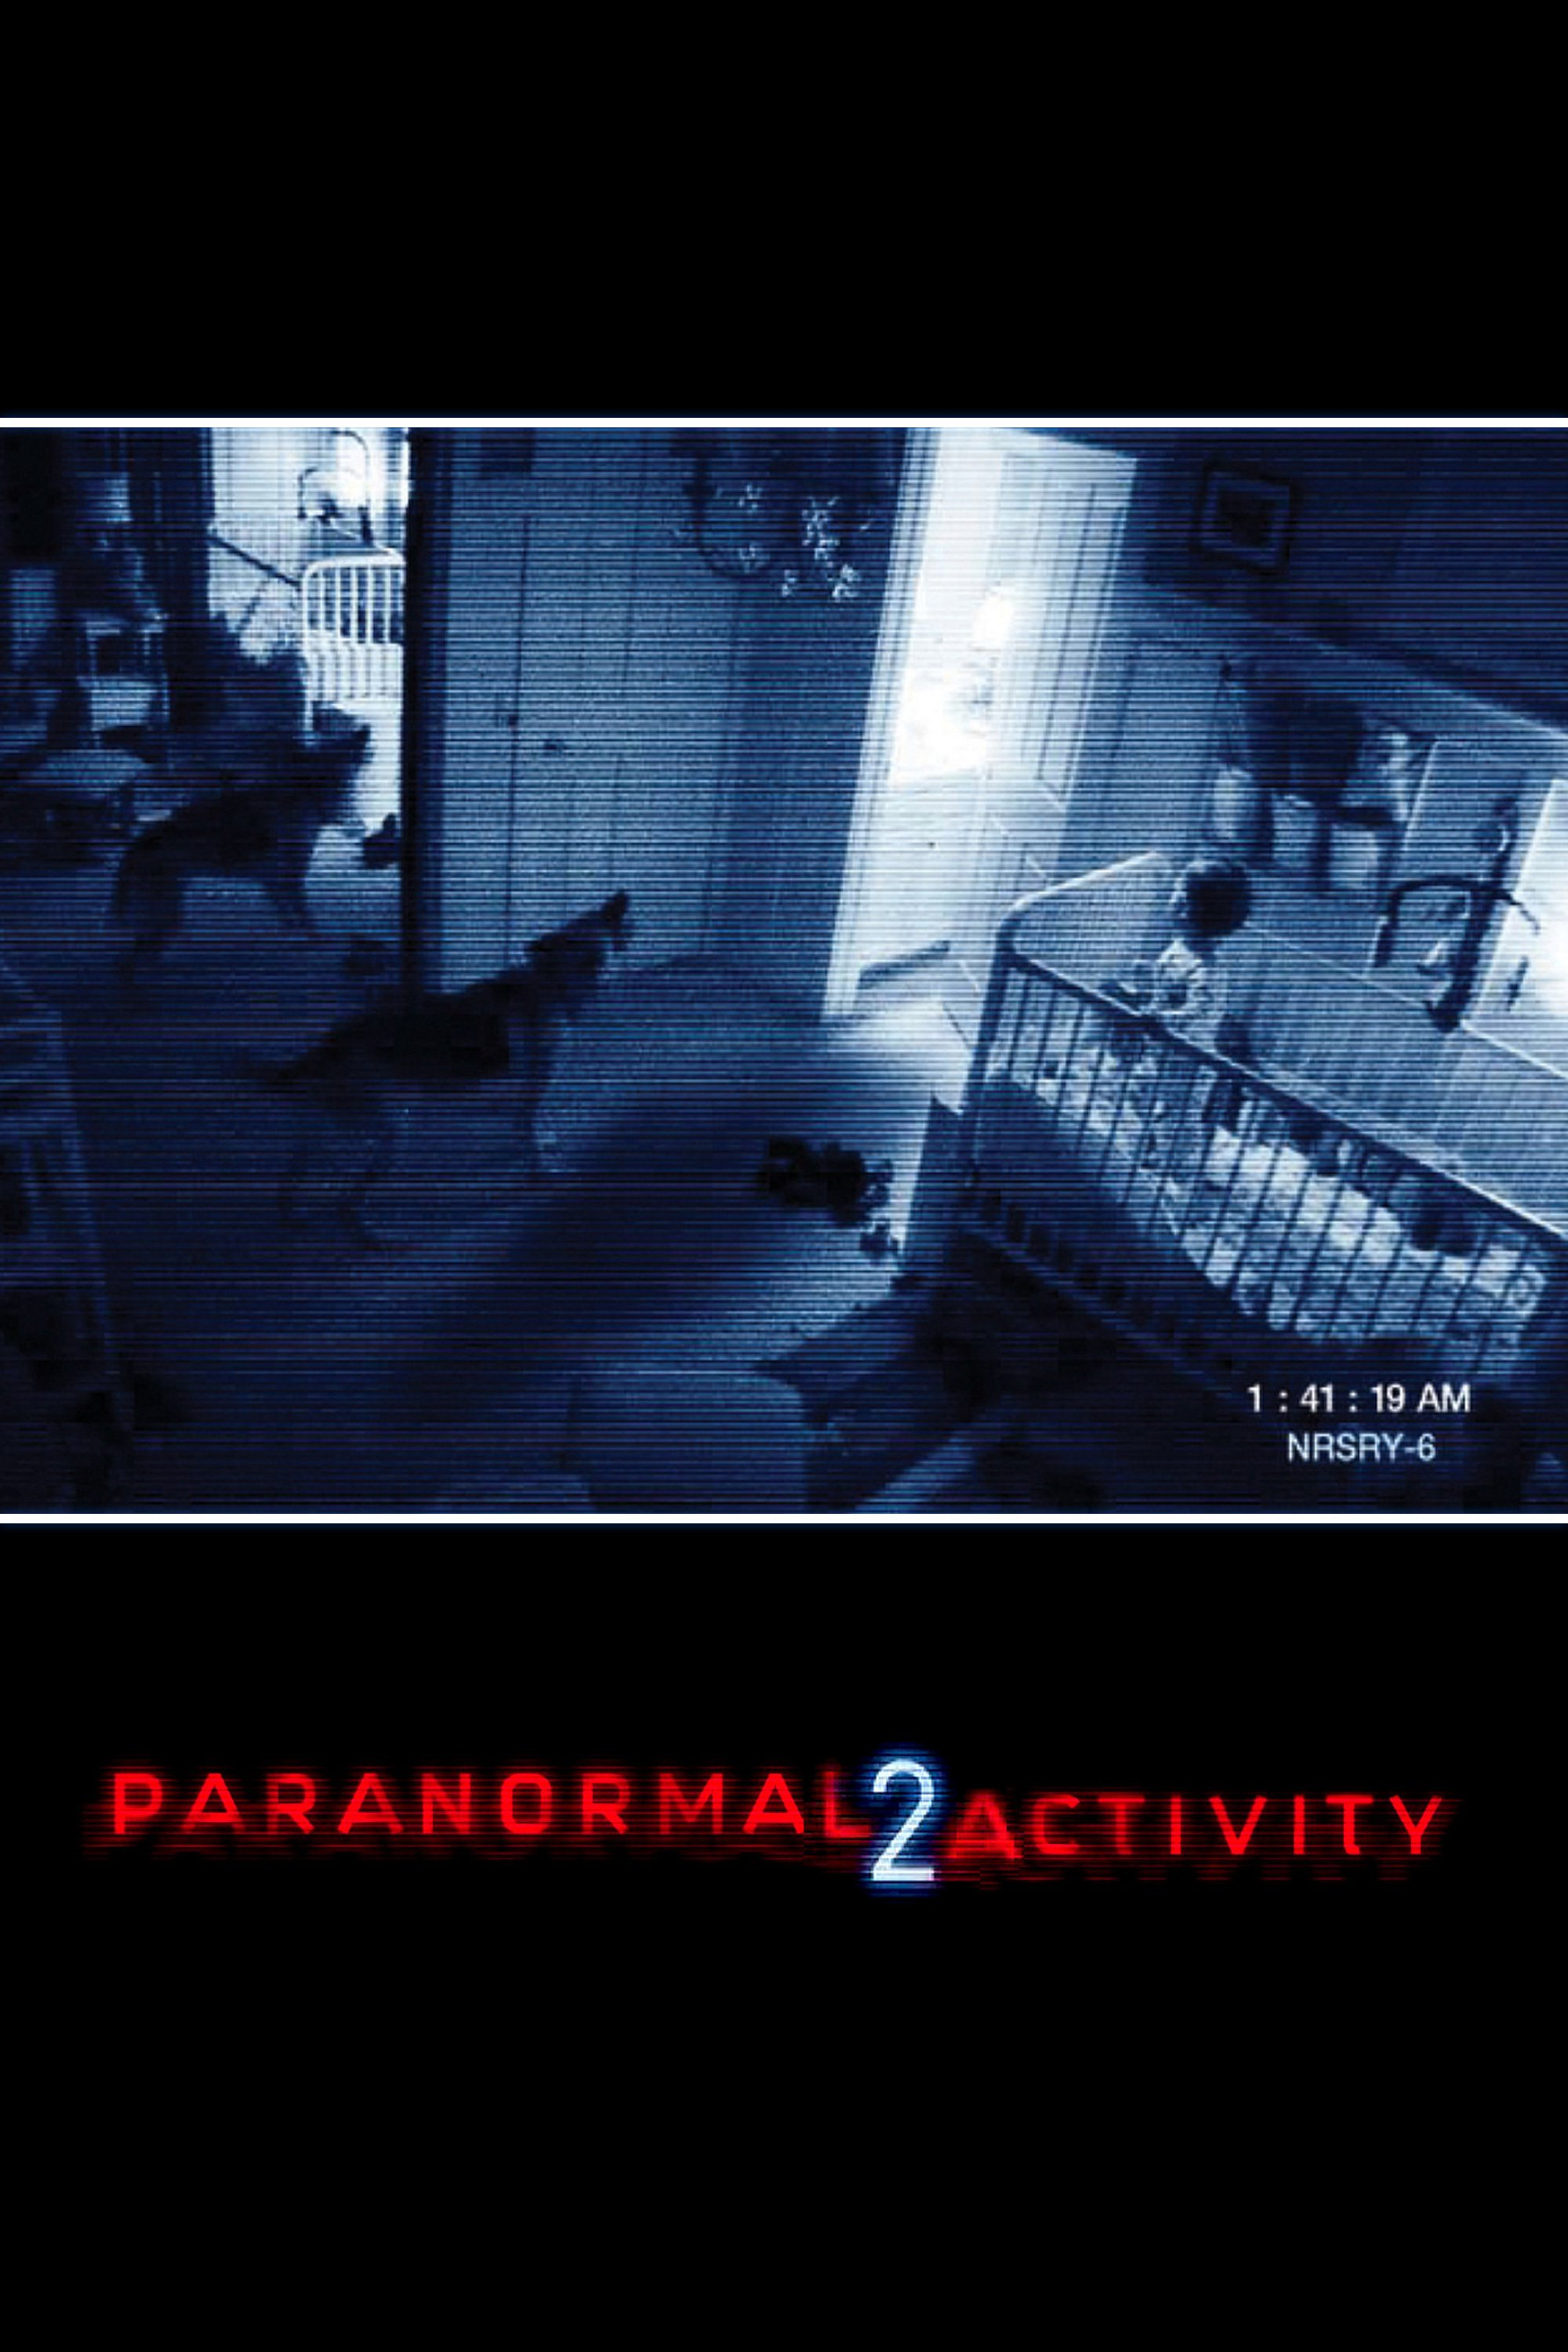 paranormal activity films